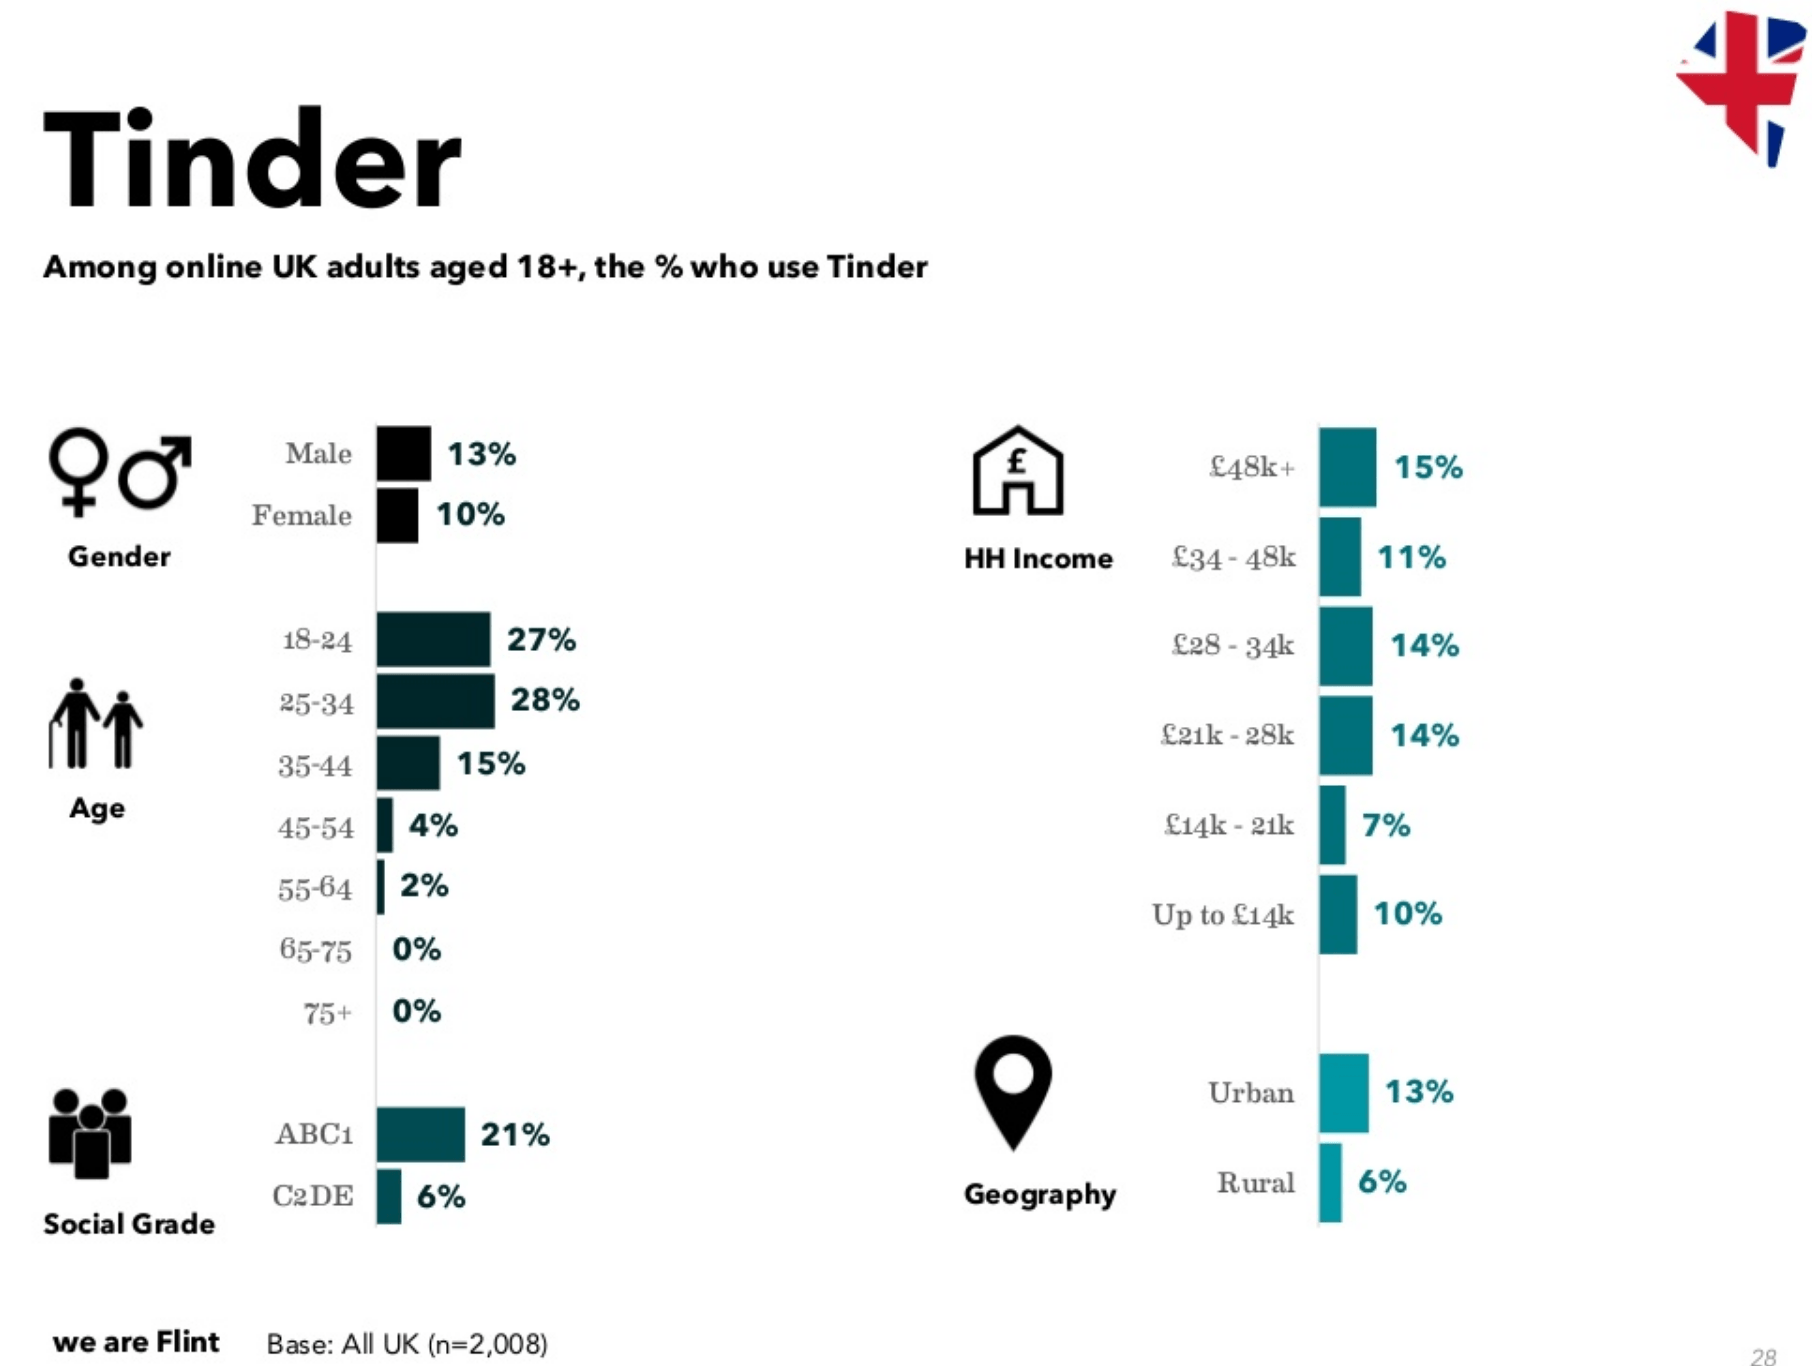 Tinder usage in the UK